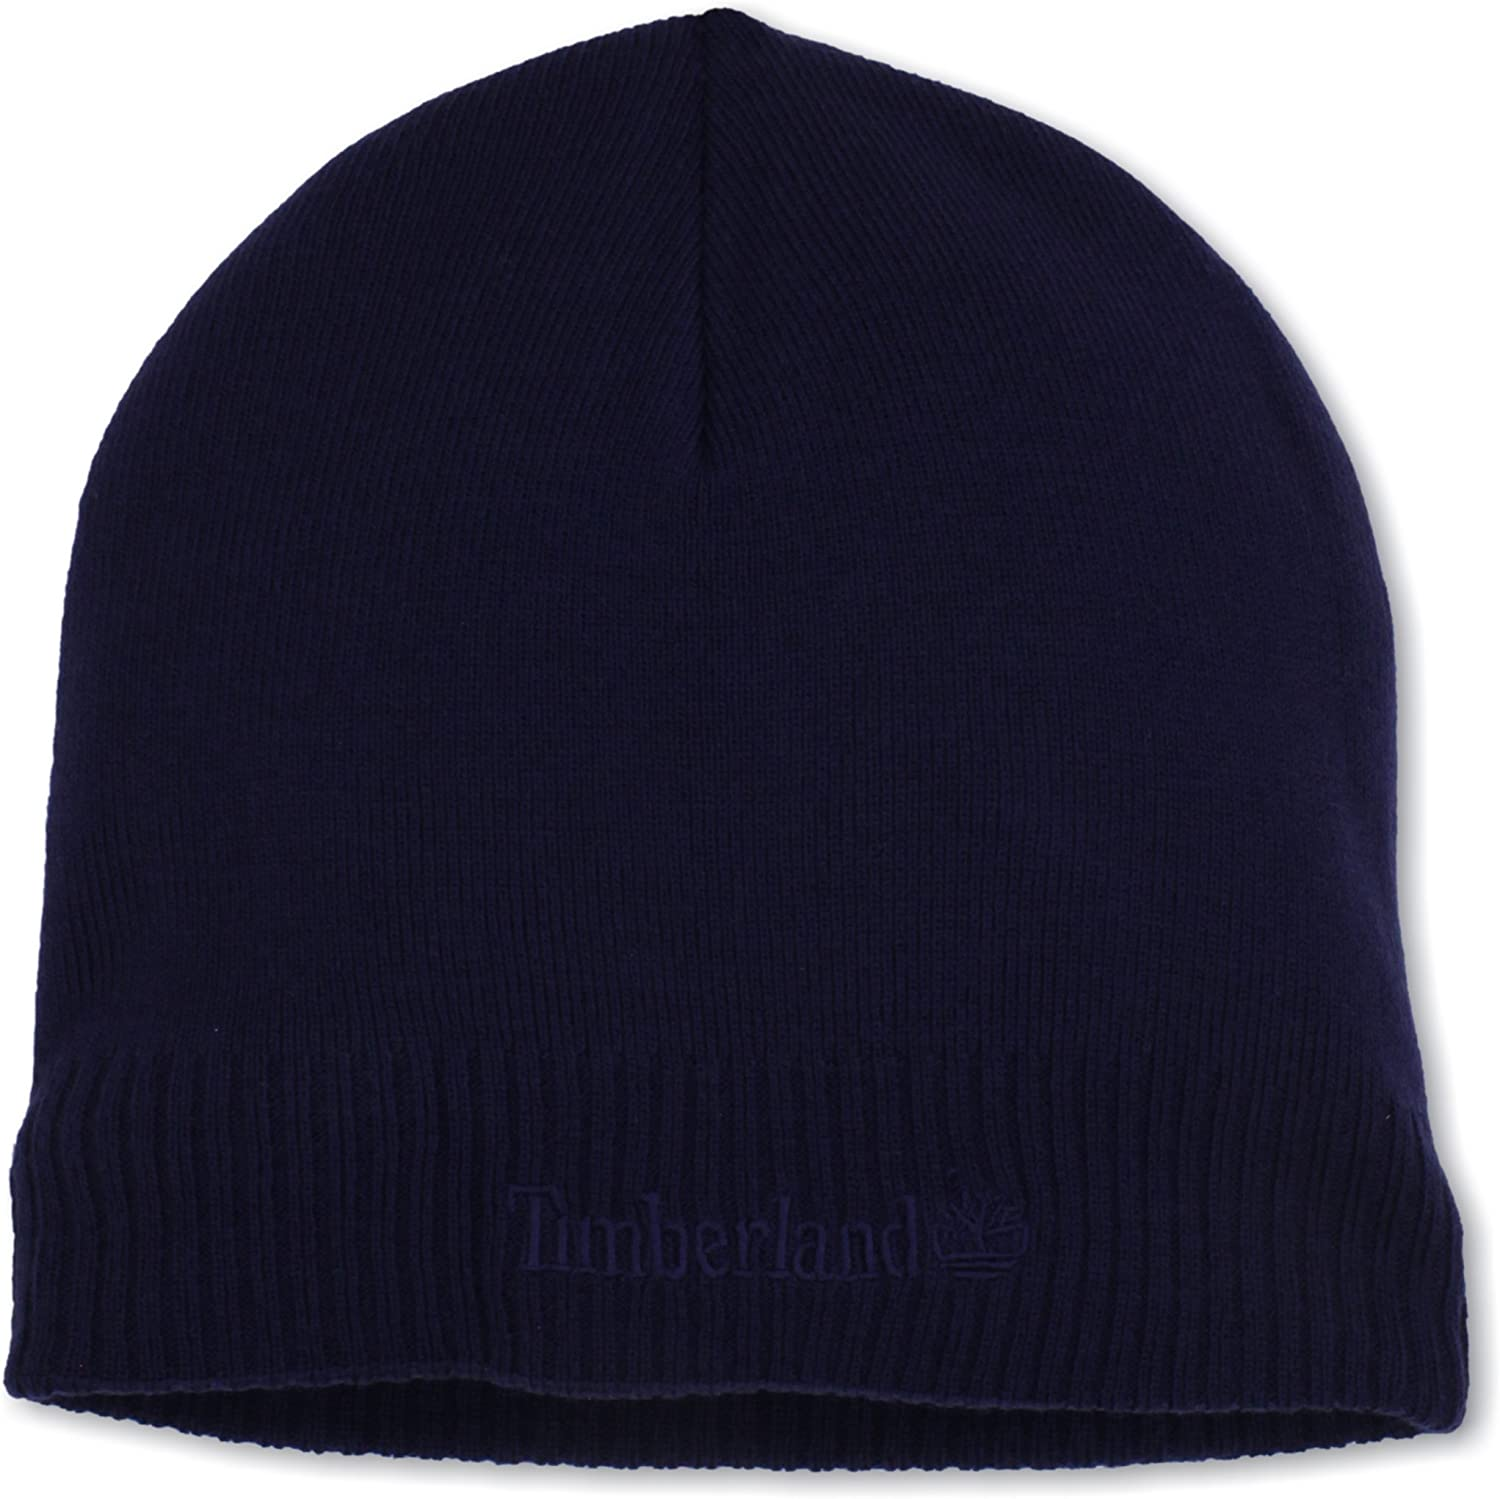 Timberland Mens Basic Beanie Hat